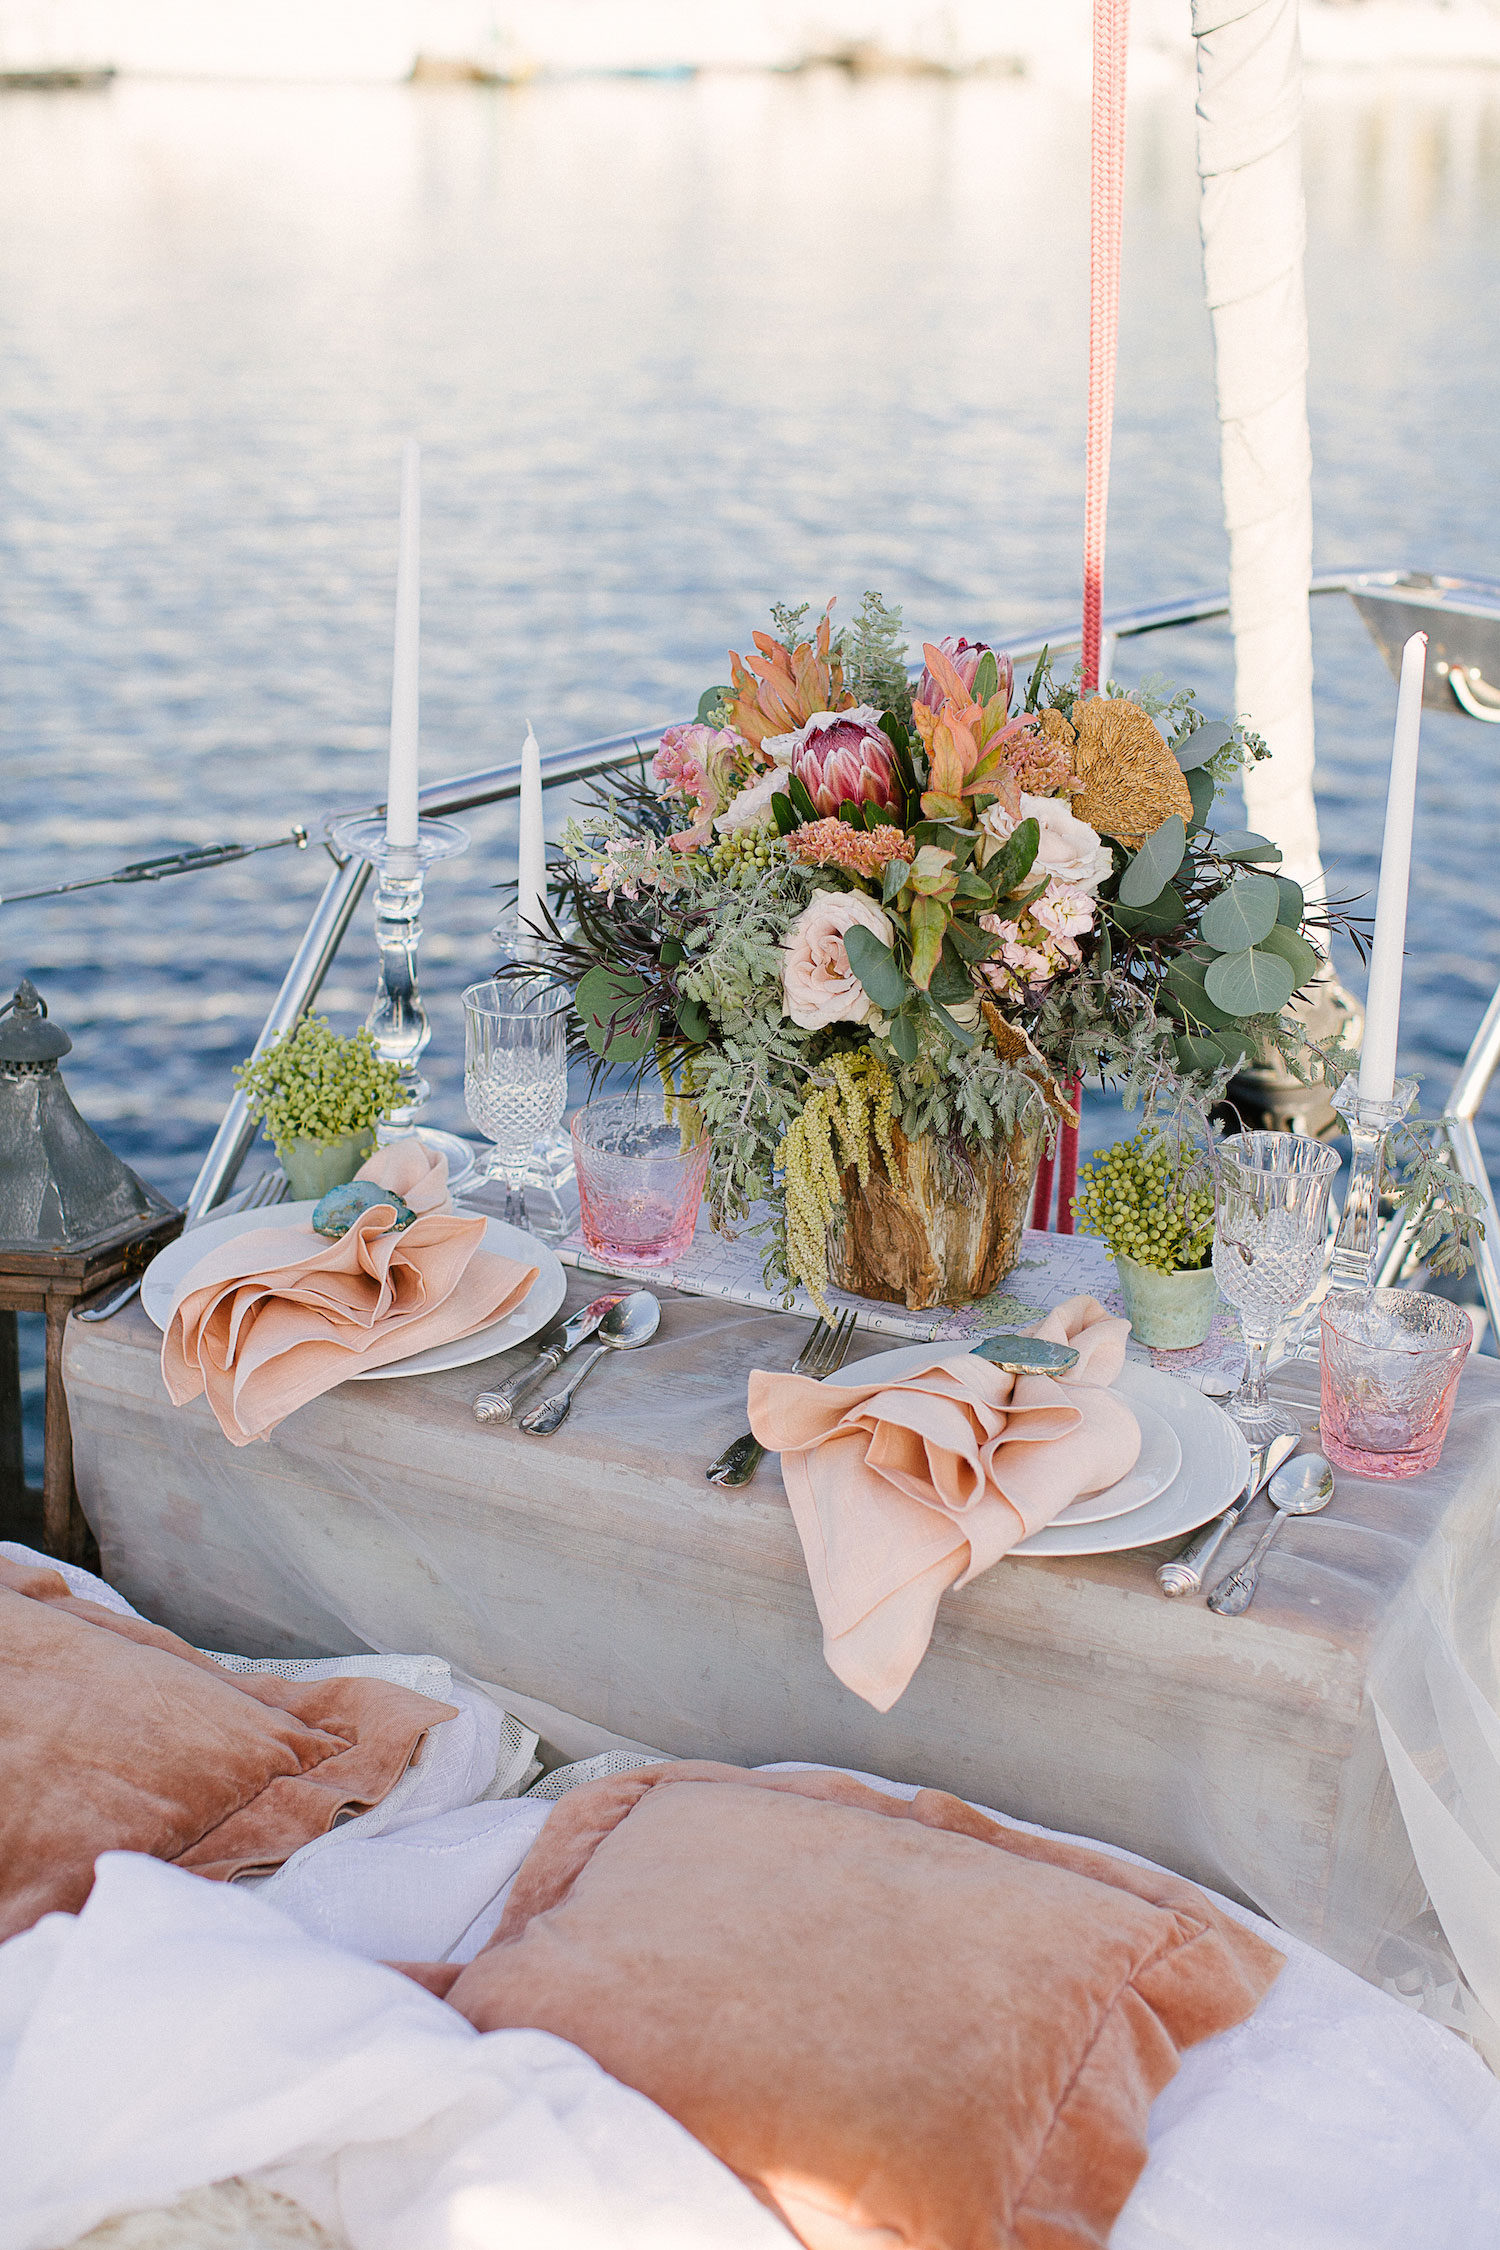 Private dinner set up on bow of sailboat